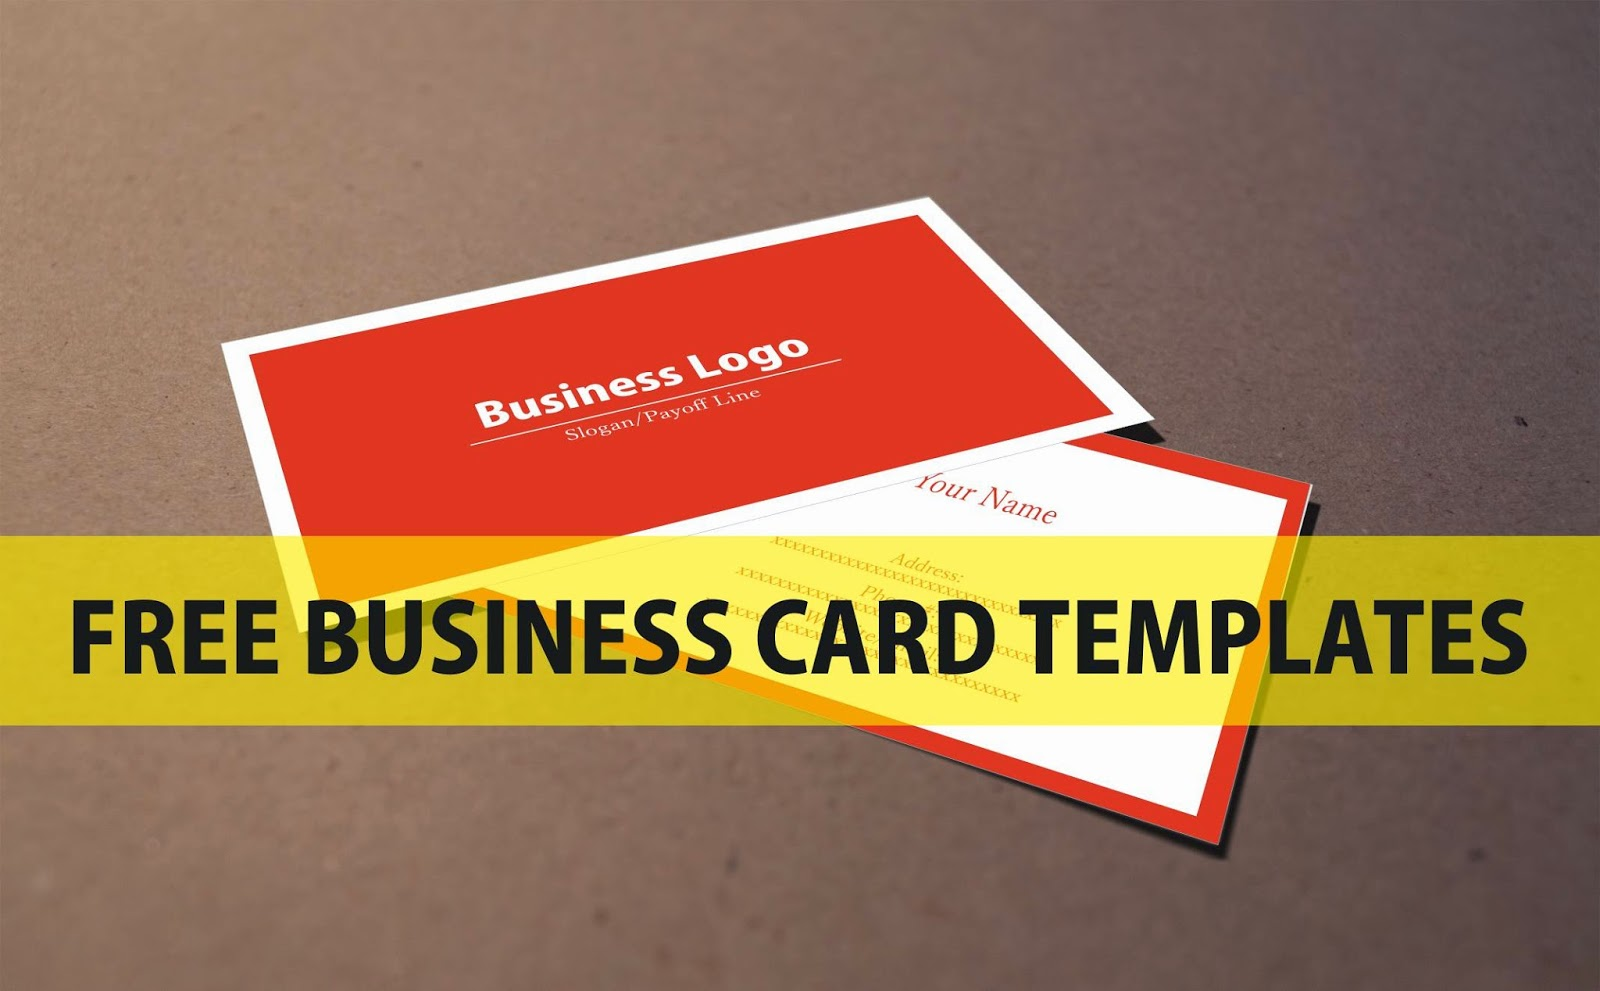 Free business card template download coreldraw file a graphic free business card template download coreldraw file accmission Choice Image